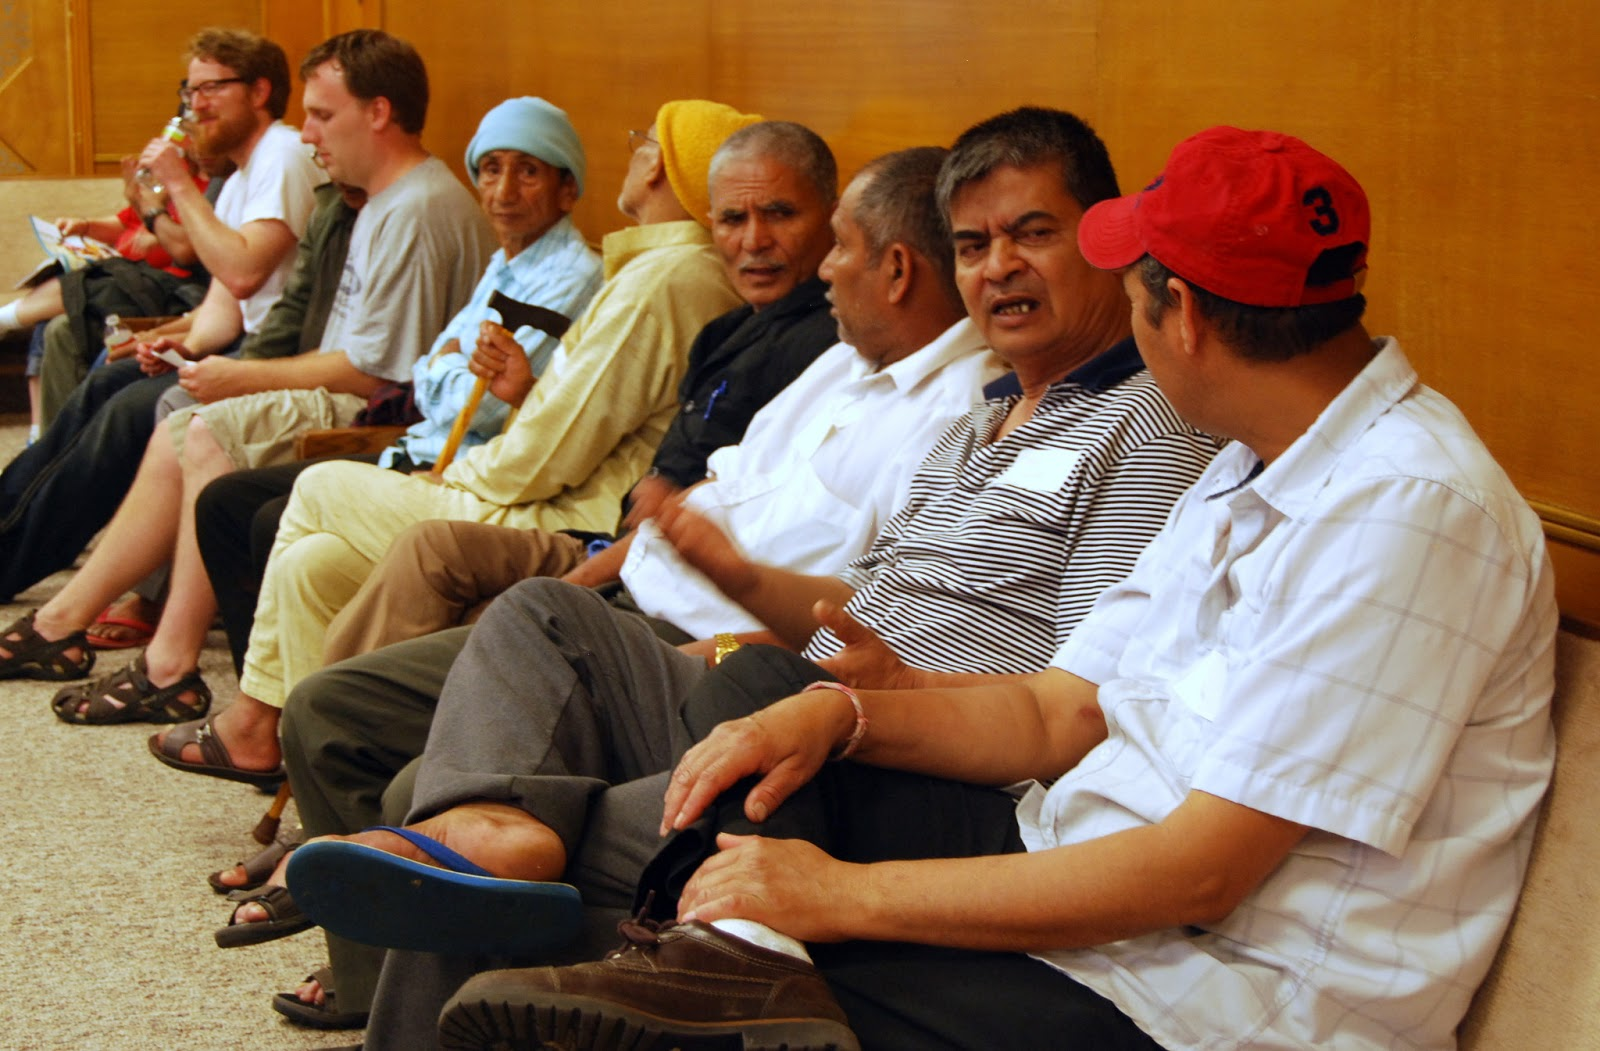 Bhutanese men talk together at the ESL Launch Party last Tuesday night.